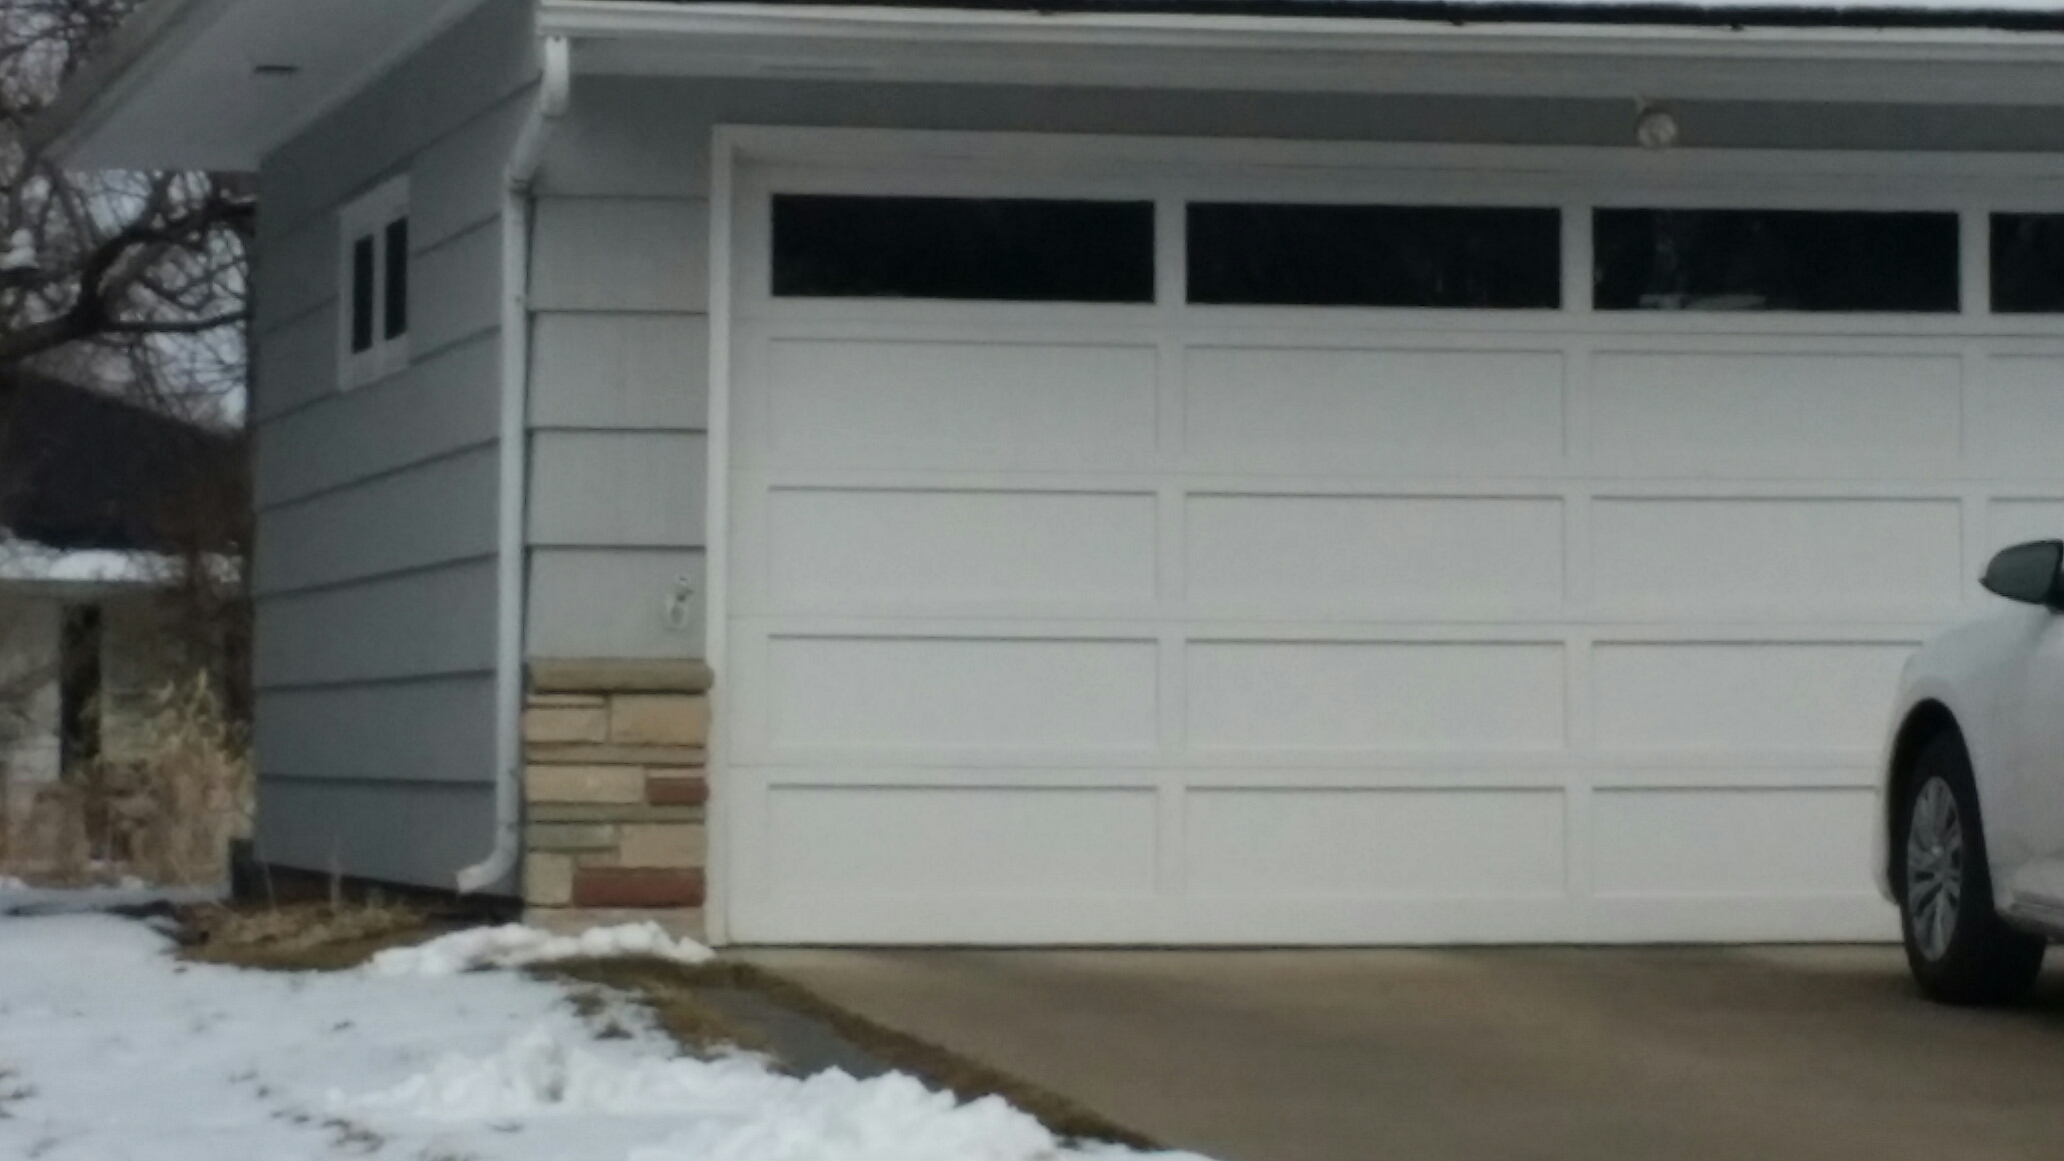 Medina, MN - Estimate for garage door replacement